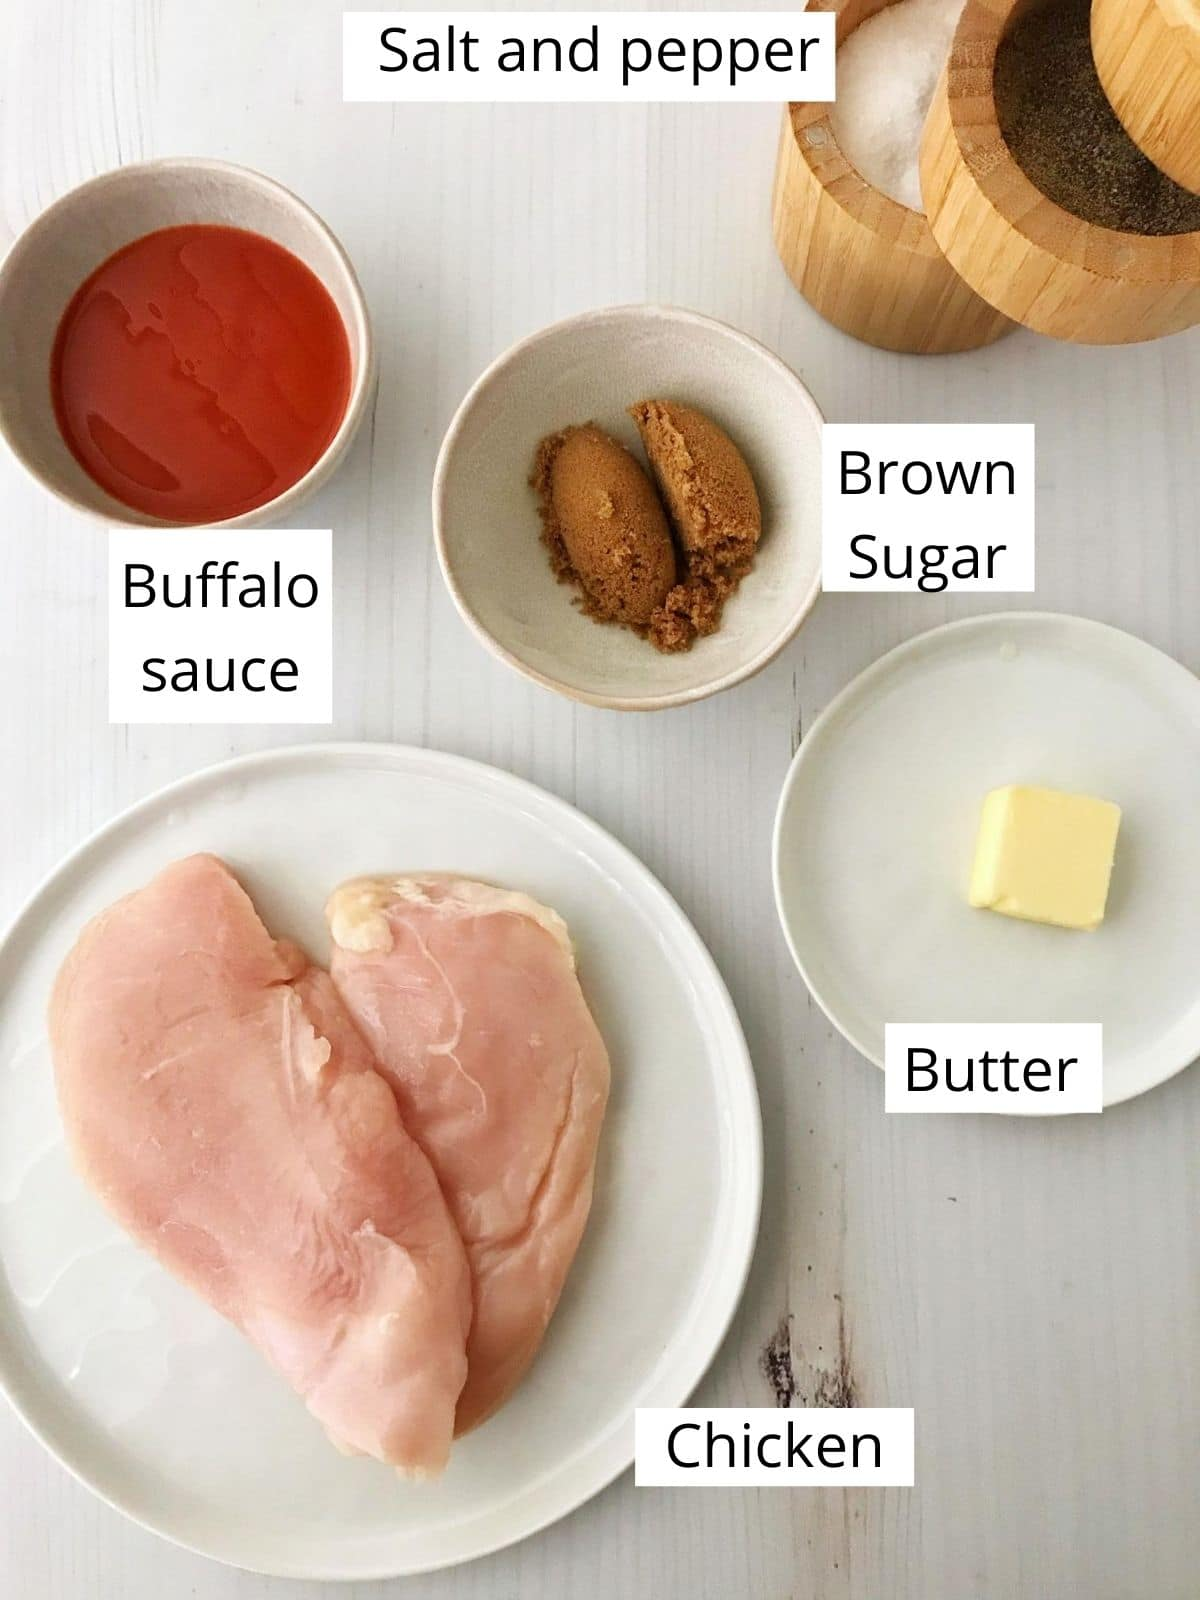 buffalo sauce ingredients, labled